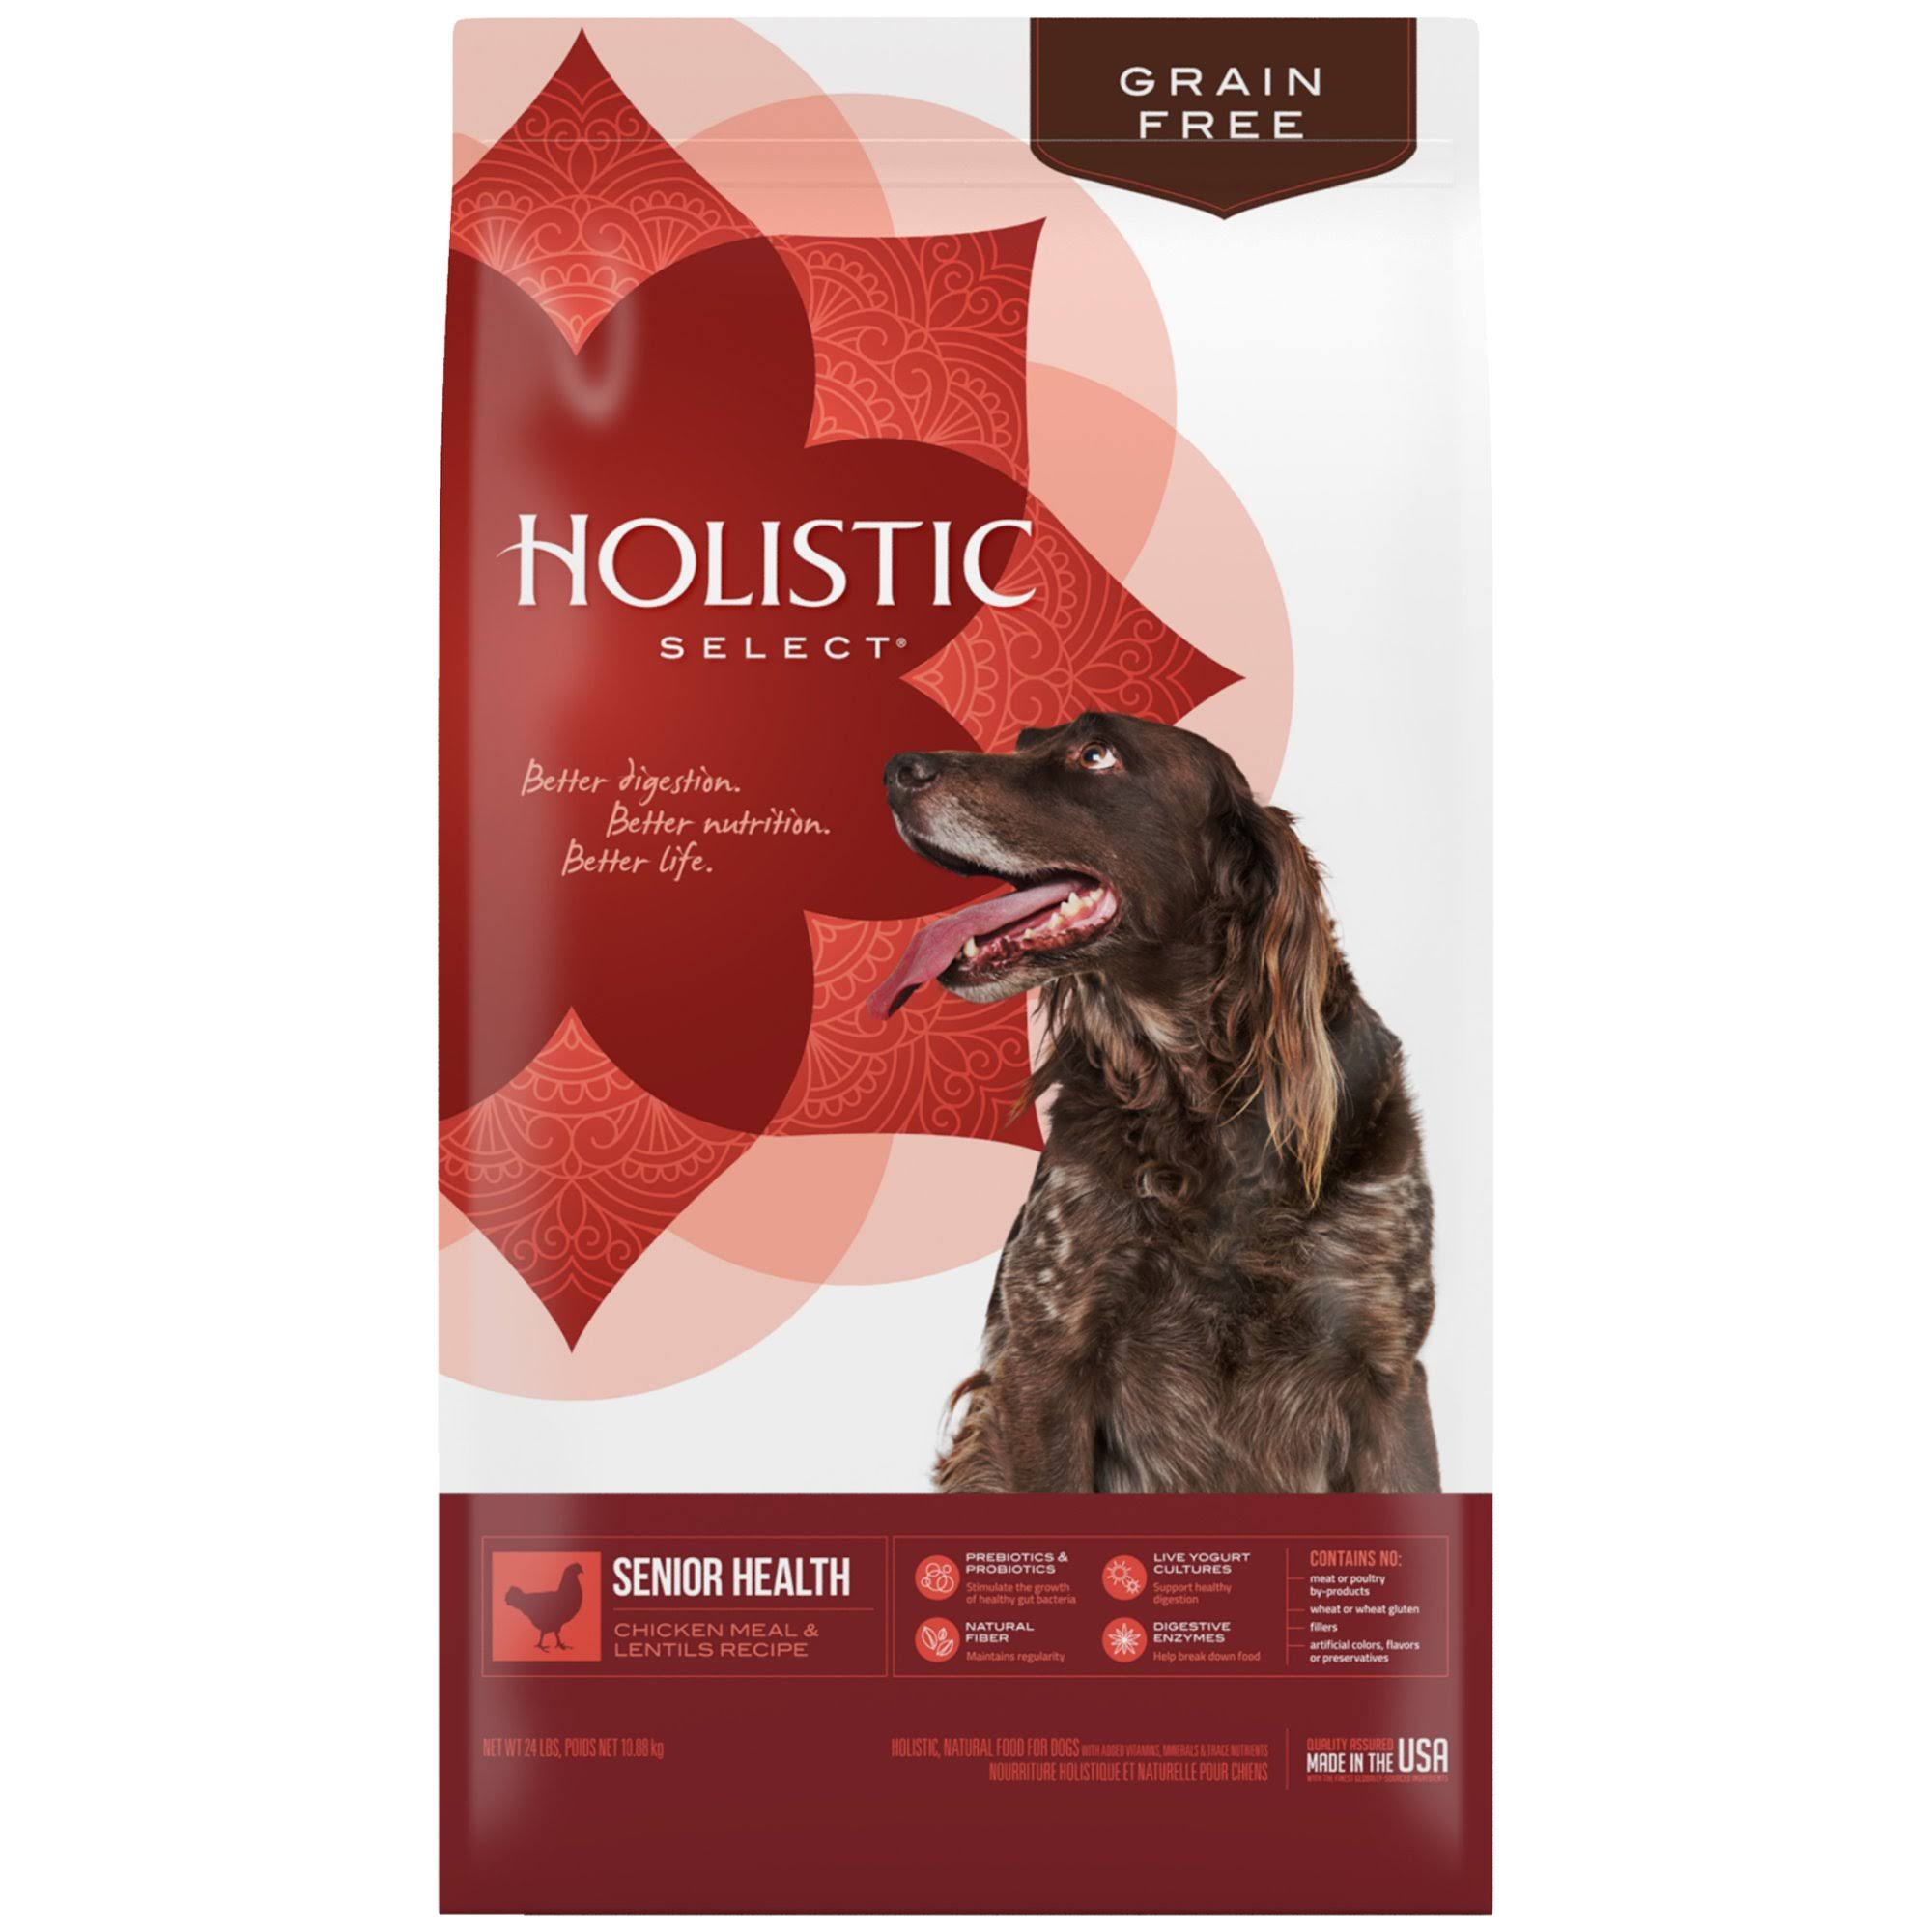 Holistic Select Natural Grain Free Senior Chicken Meal and Lentil Dry Dog Food - 24-lb